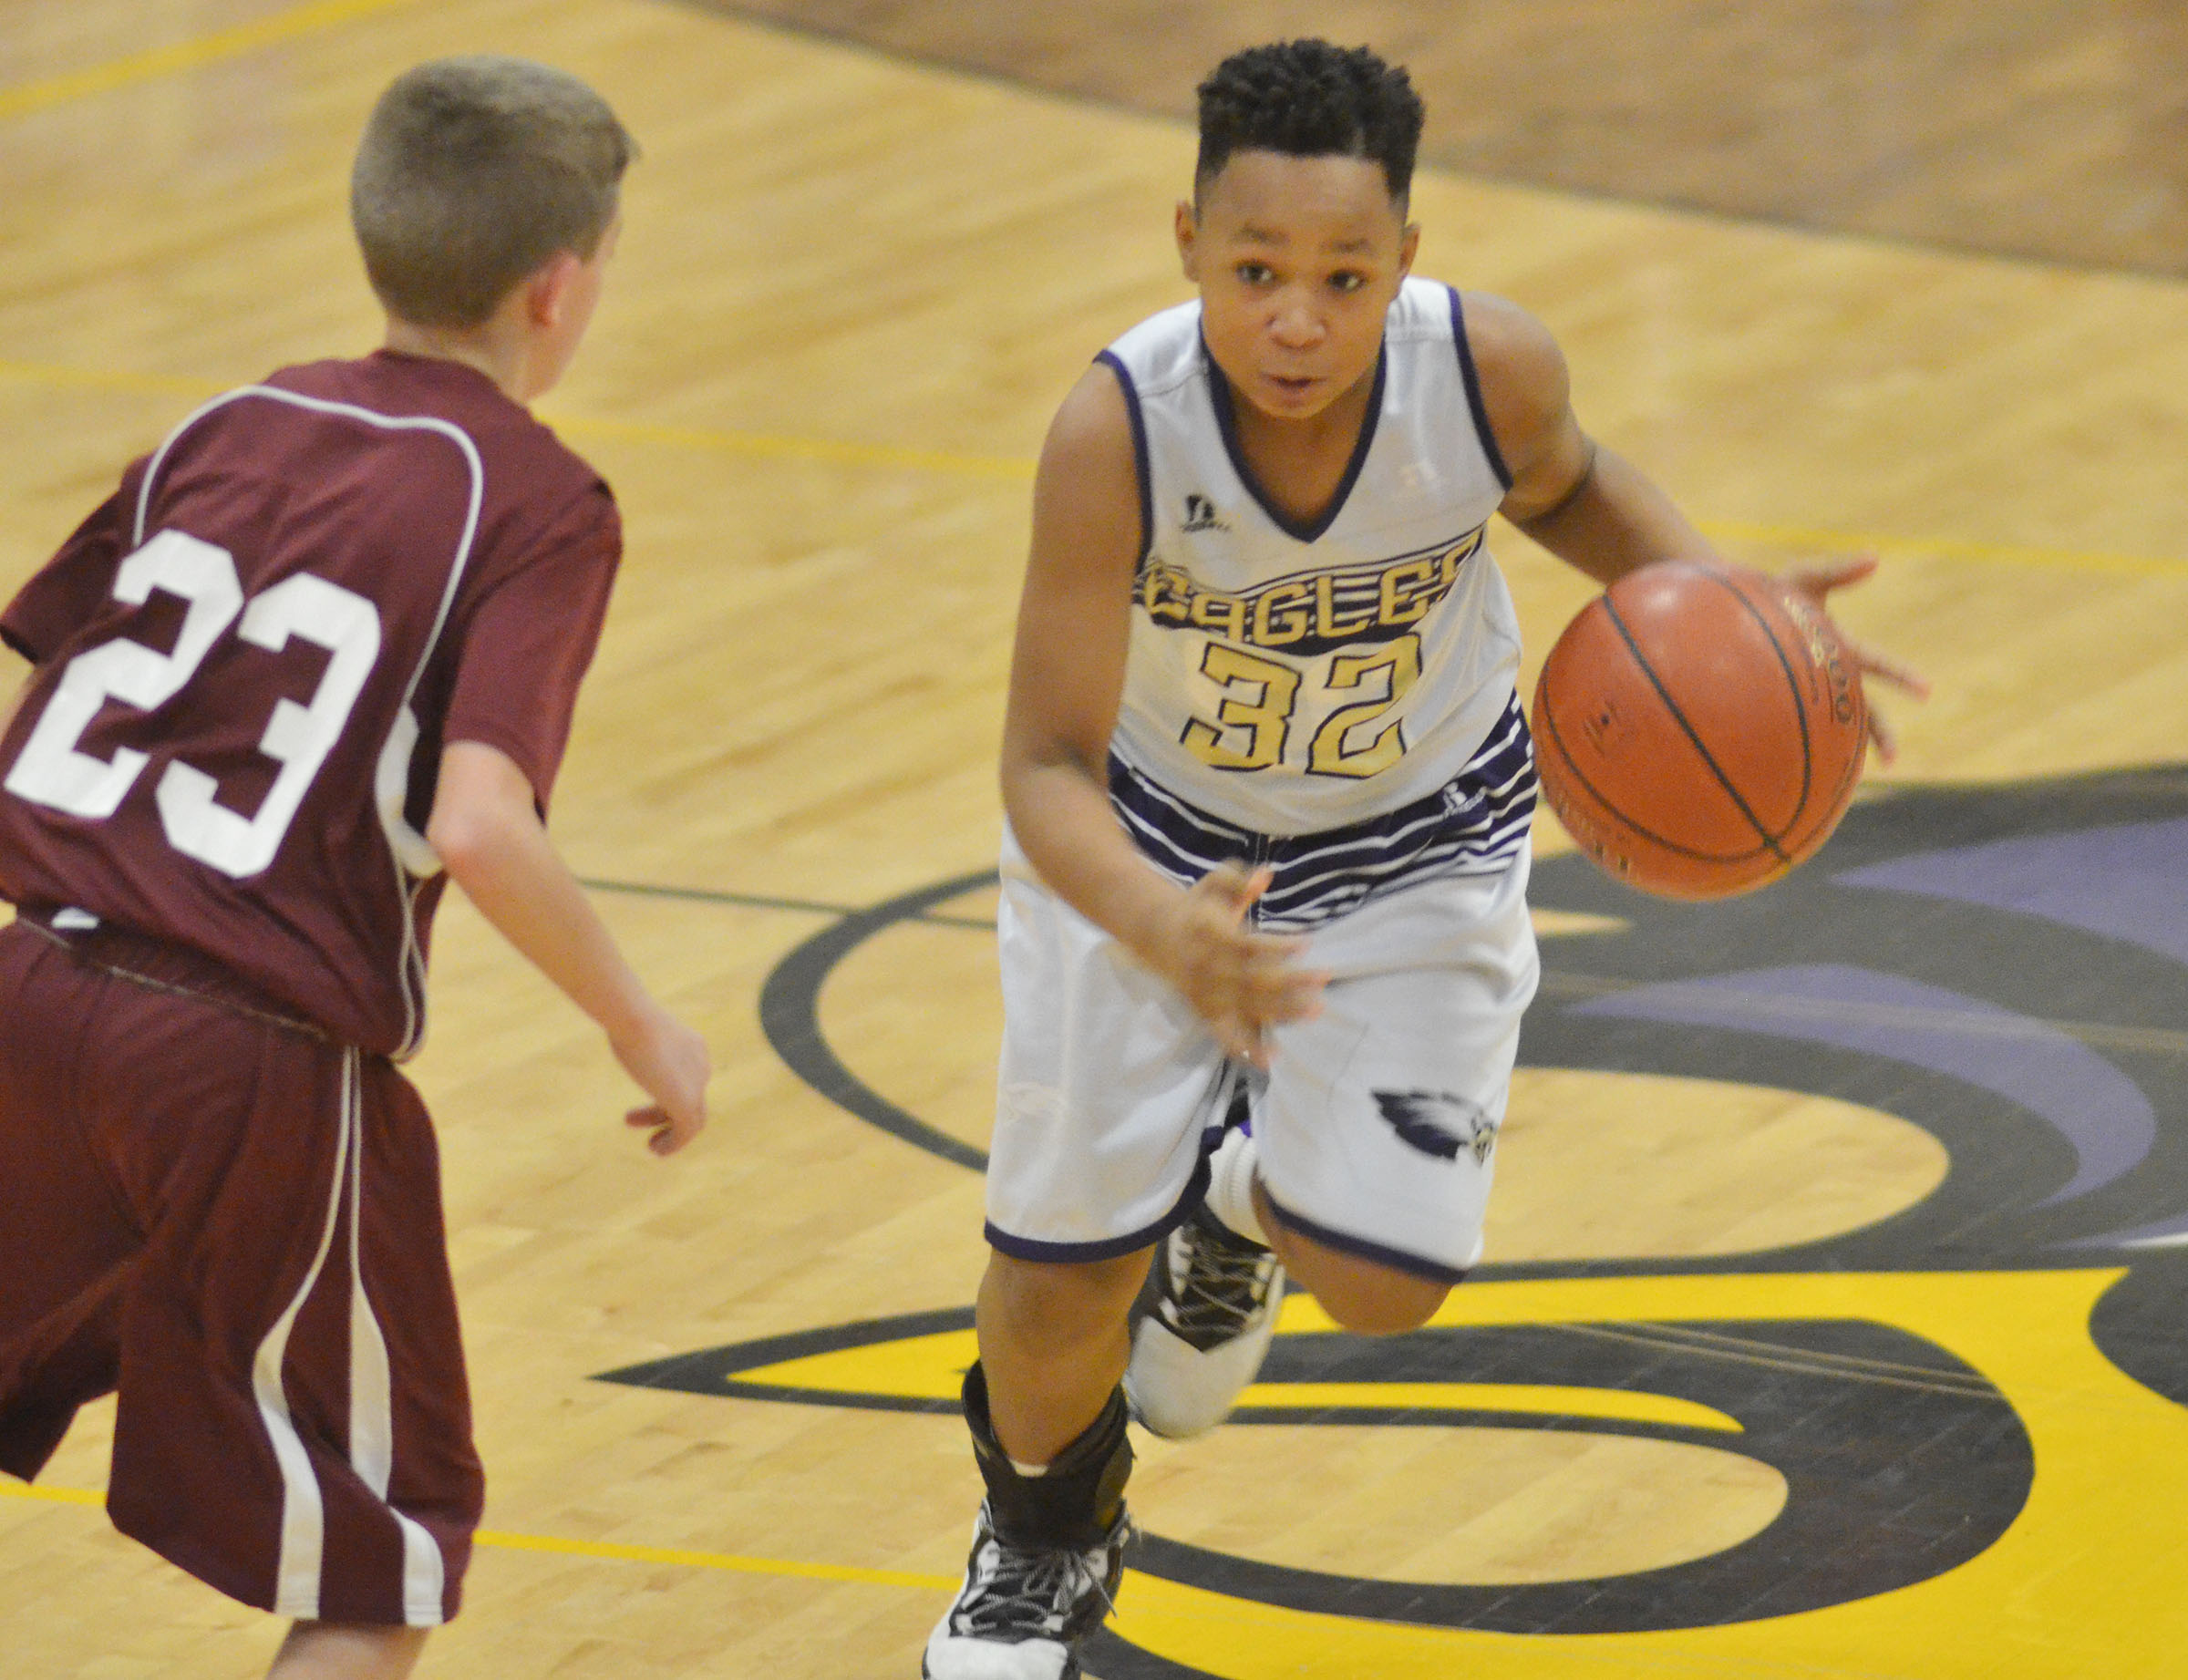 CMS sixth-grader Deondre Weathers drives the ball.